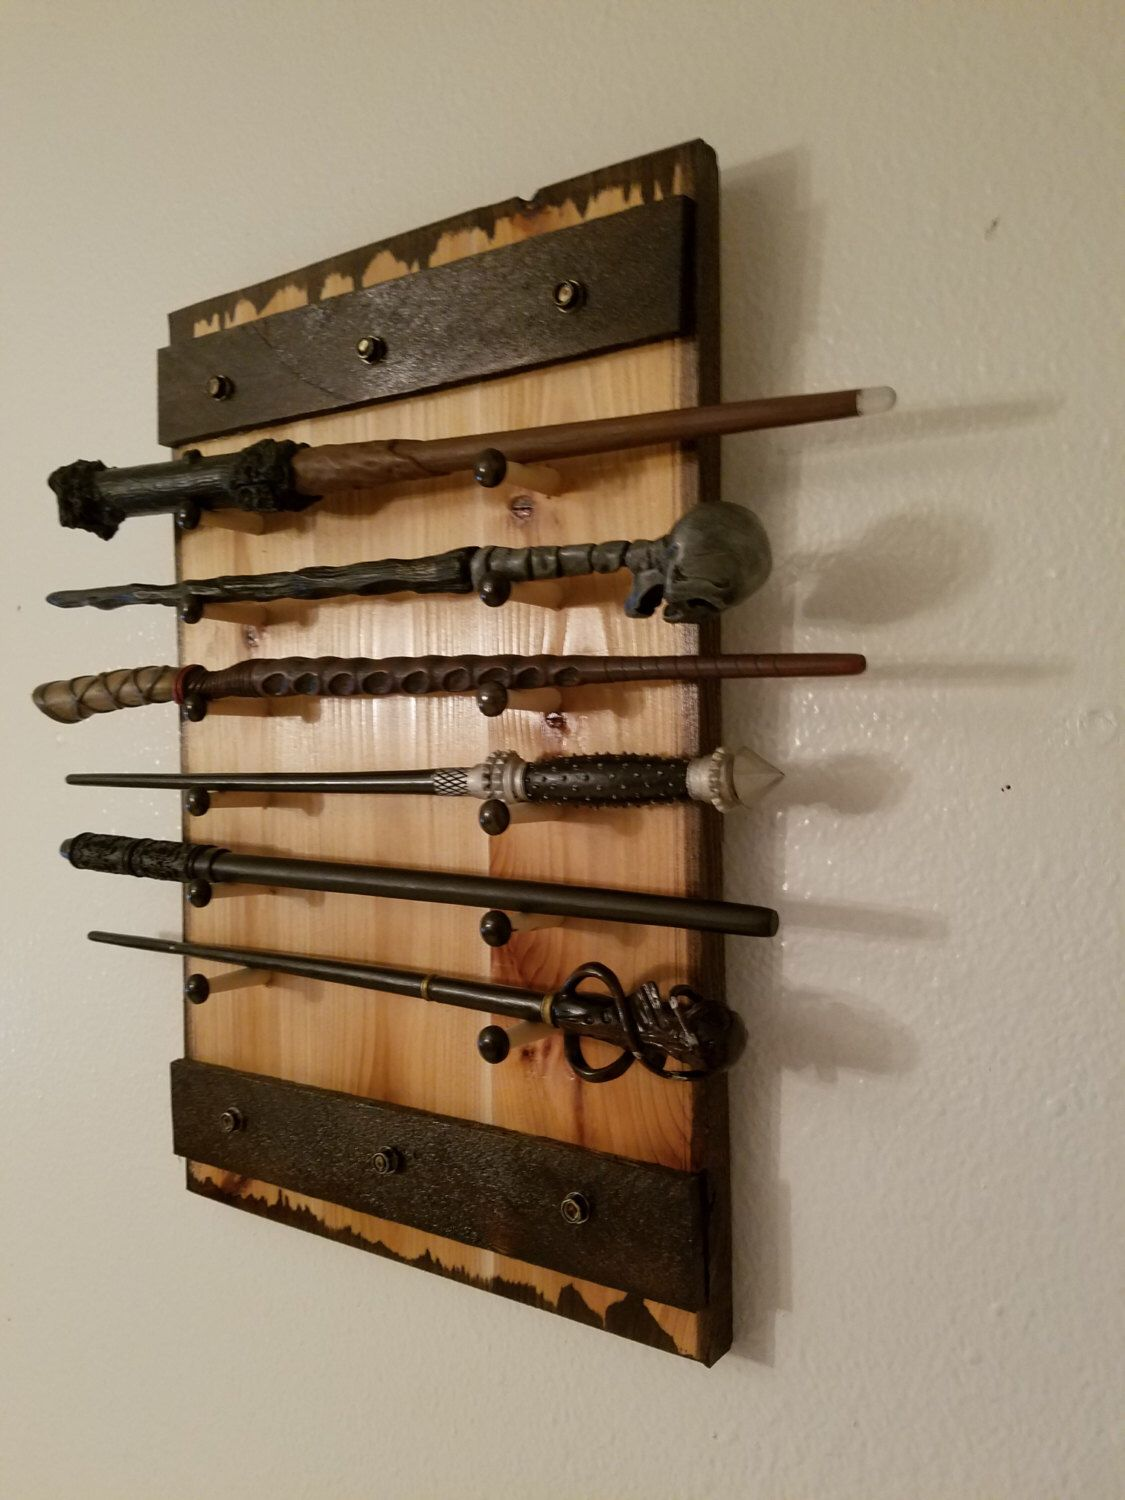 Harry Potter Display Harry Potter Wand Holder Holds 1 To 12 Wands Wand Rack